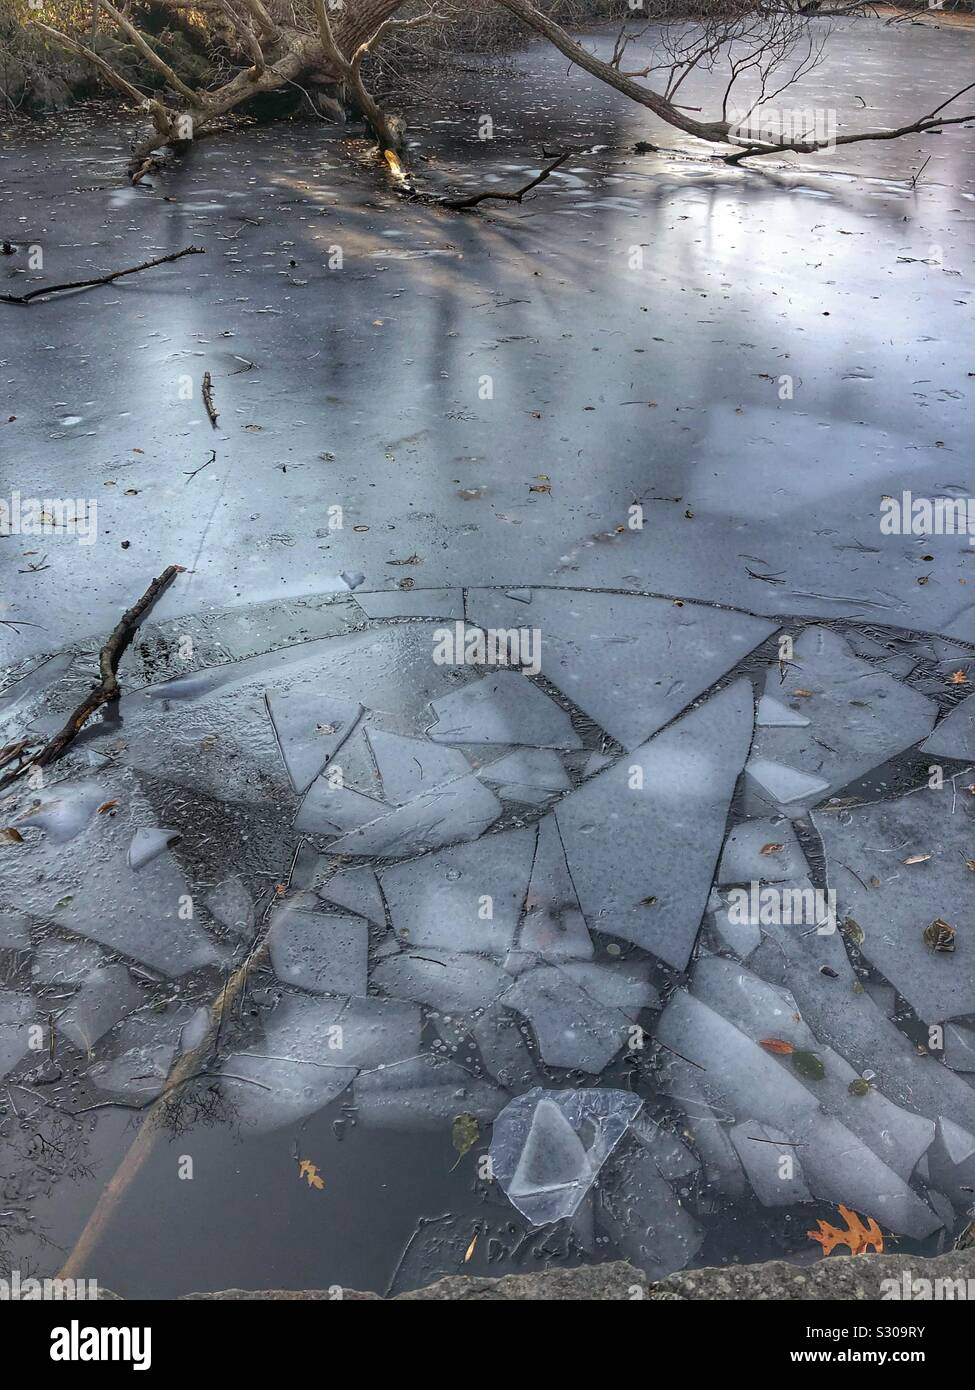 Broken ice on a pond Stock Photo 311638319 - Alamy